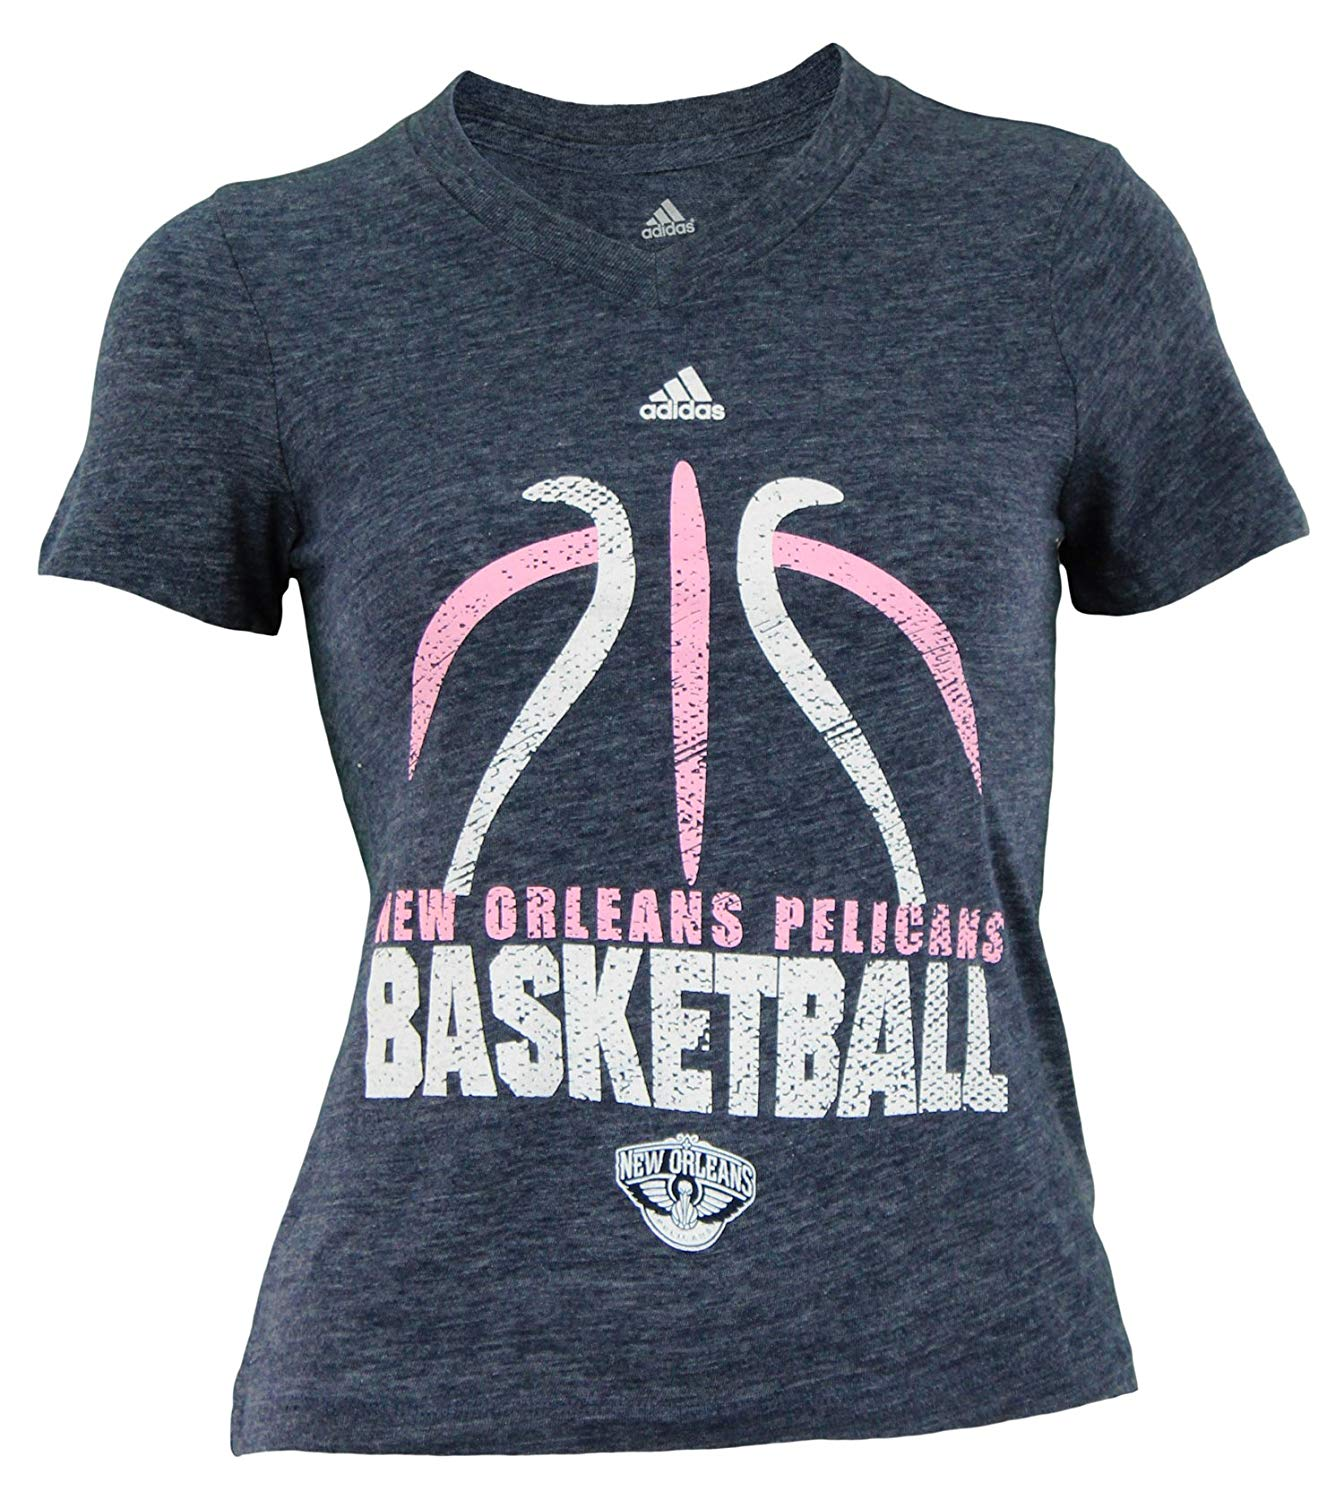 1bd42e65 Details about Reebok NBA Youth Girl's New Orleans Pelicans Short Sleeve  Flamingo Tee